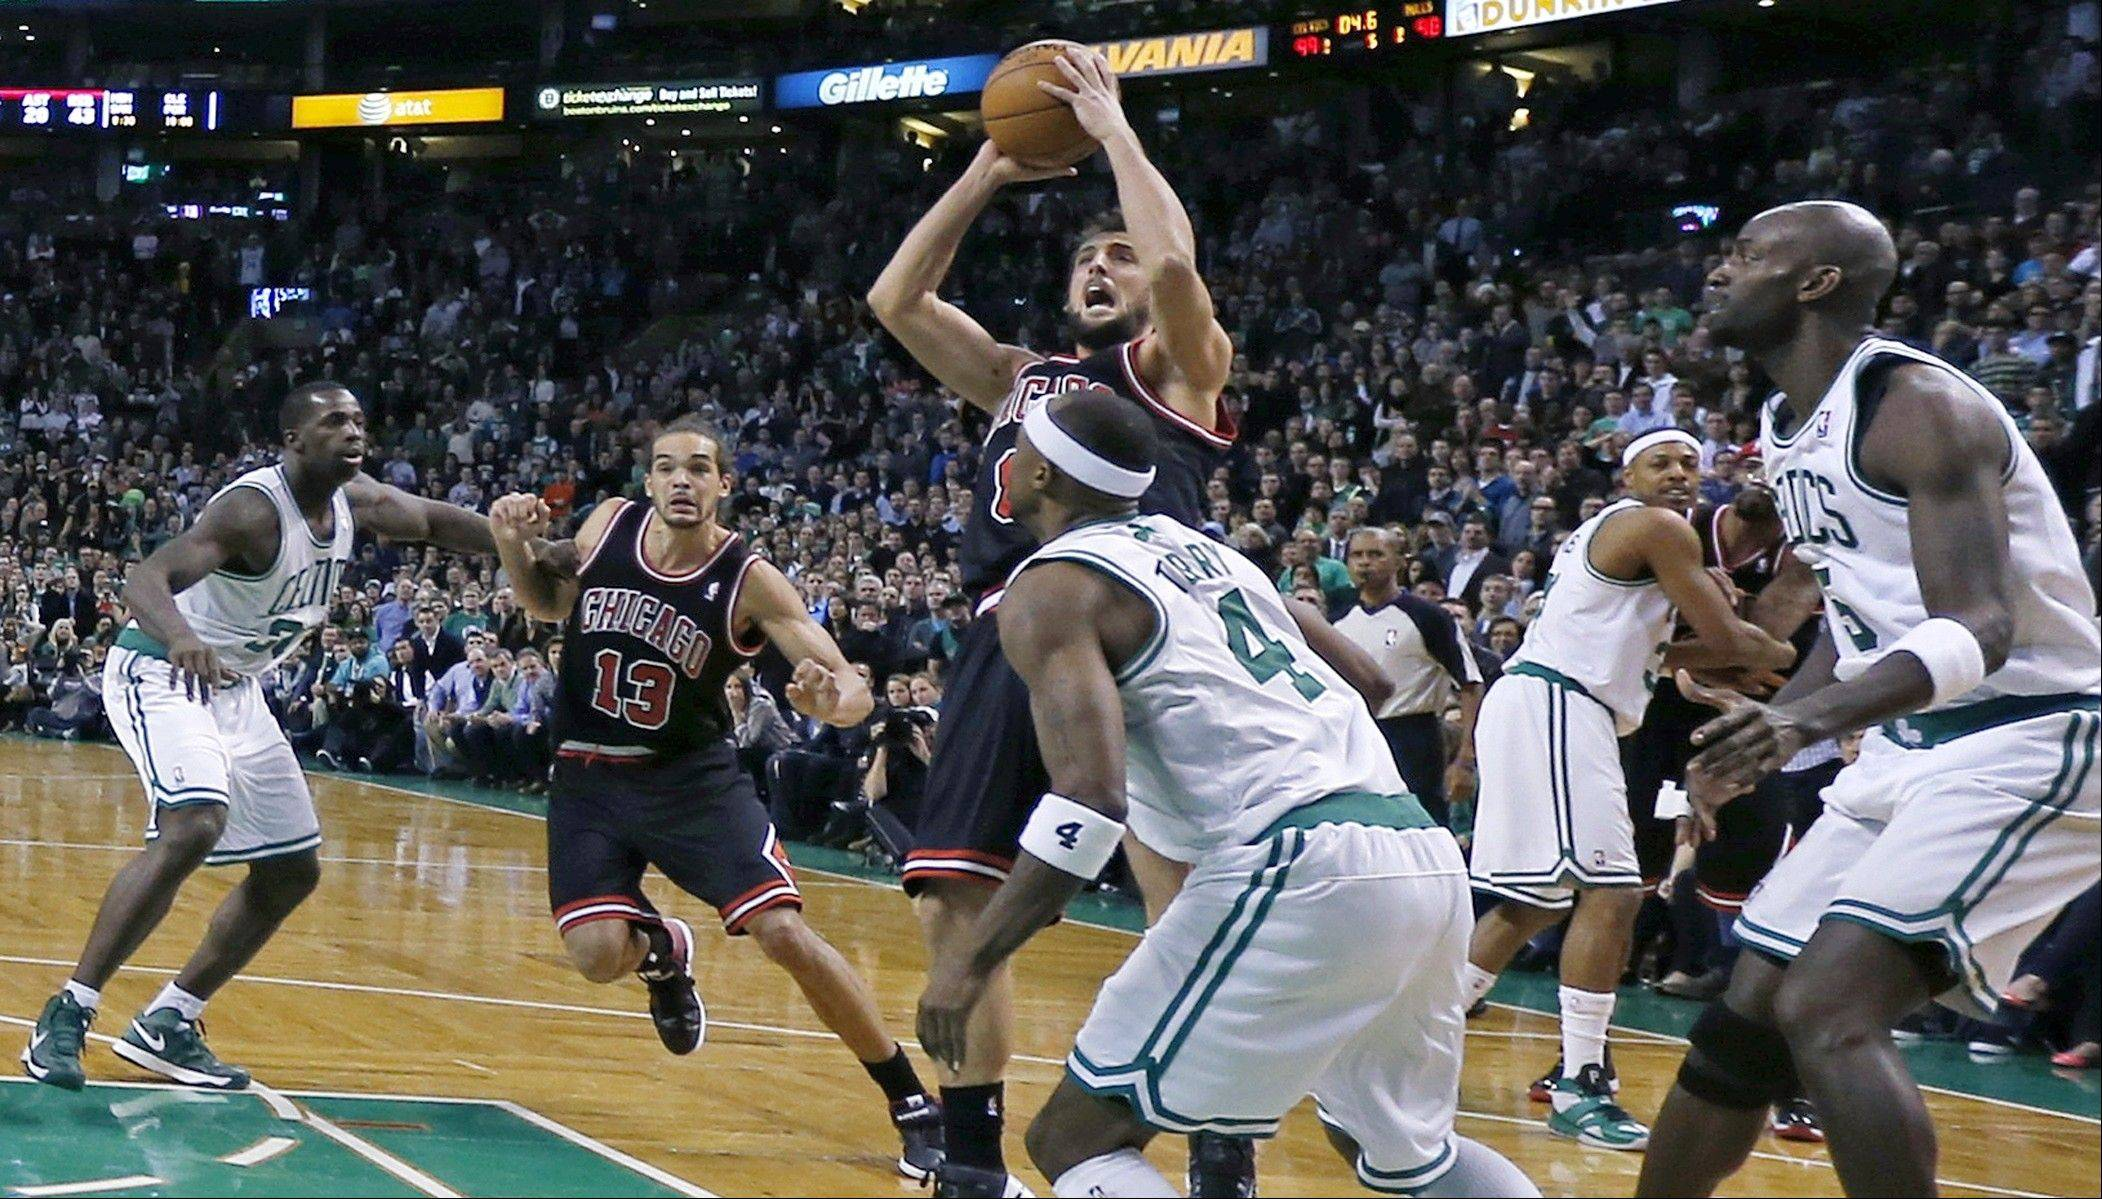 Bulls guard Marco Belinelli, center, puts up the game-winning basket in the final seconds of overtime against the Celtics Friday in Boston.